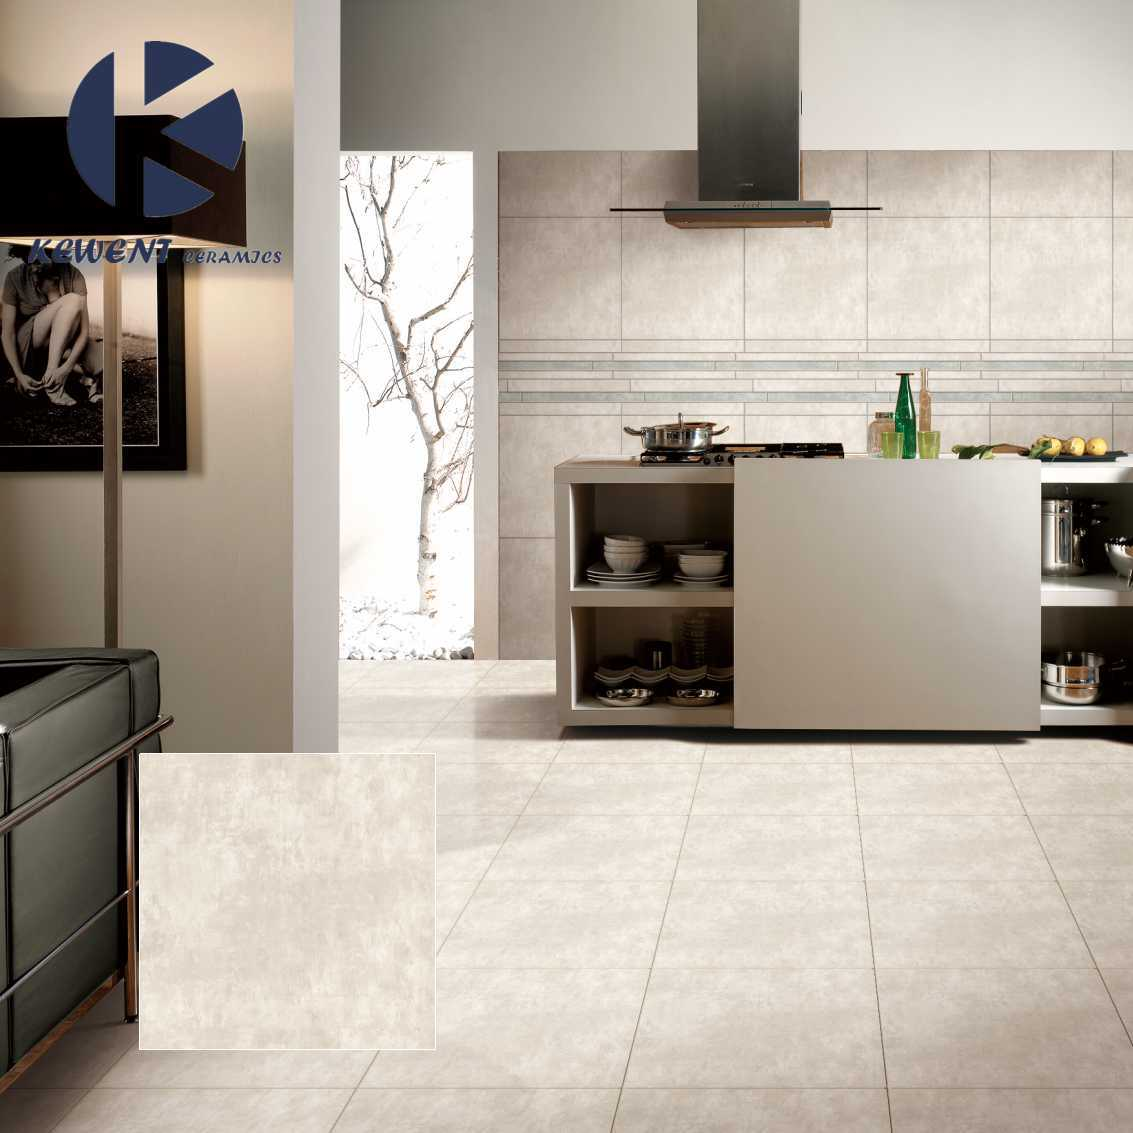 2017 New Product Rustic Glazed Porcelain Floor Tile with Matt Finished 600X600mm